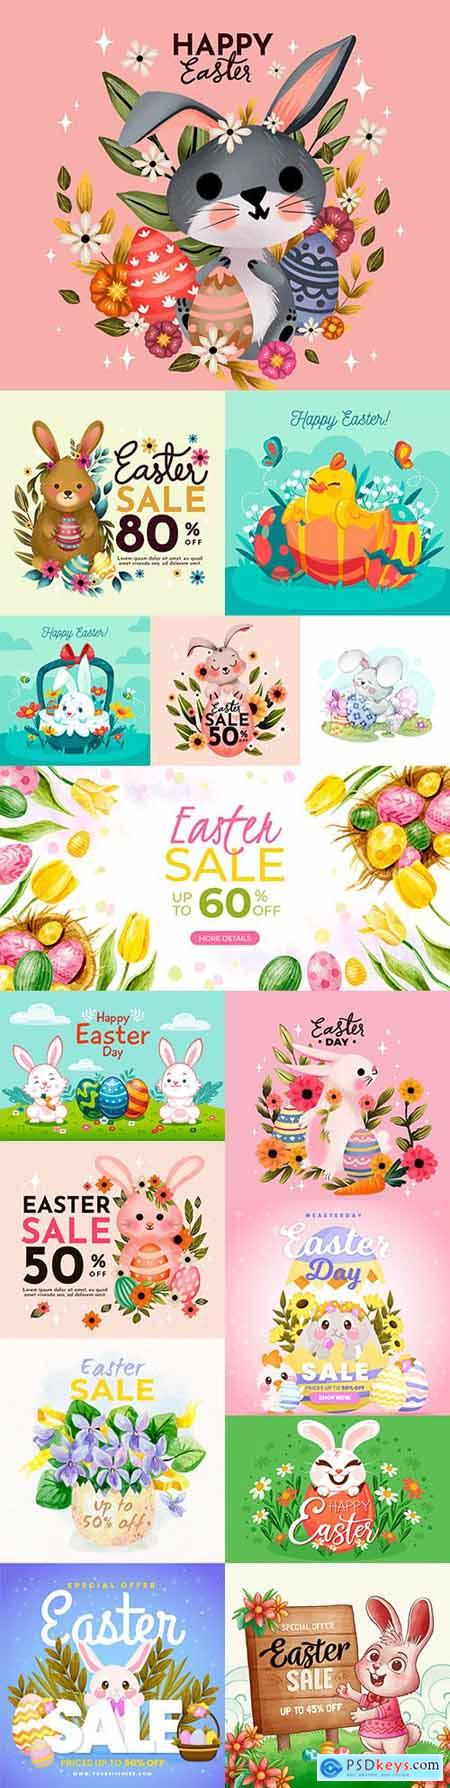 Happy Easter watercolor illustrations bunny and egg elements